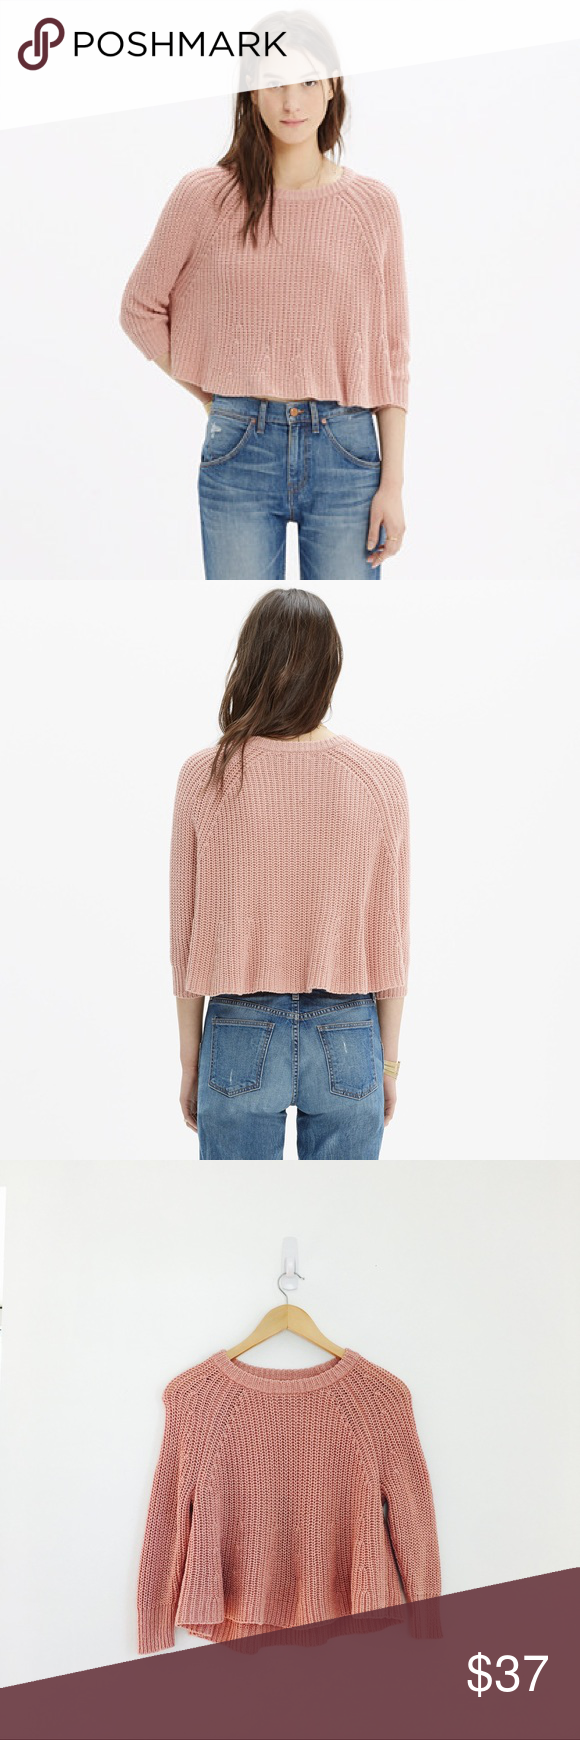 Madewell crop sweater Swing Crop Sweater by Madewell. Cropped ...